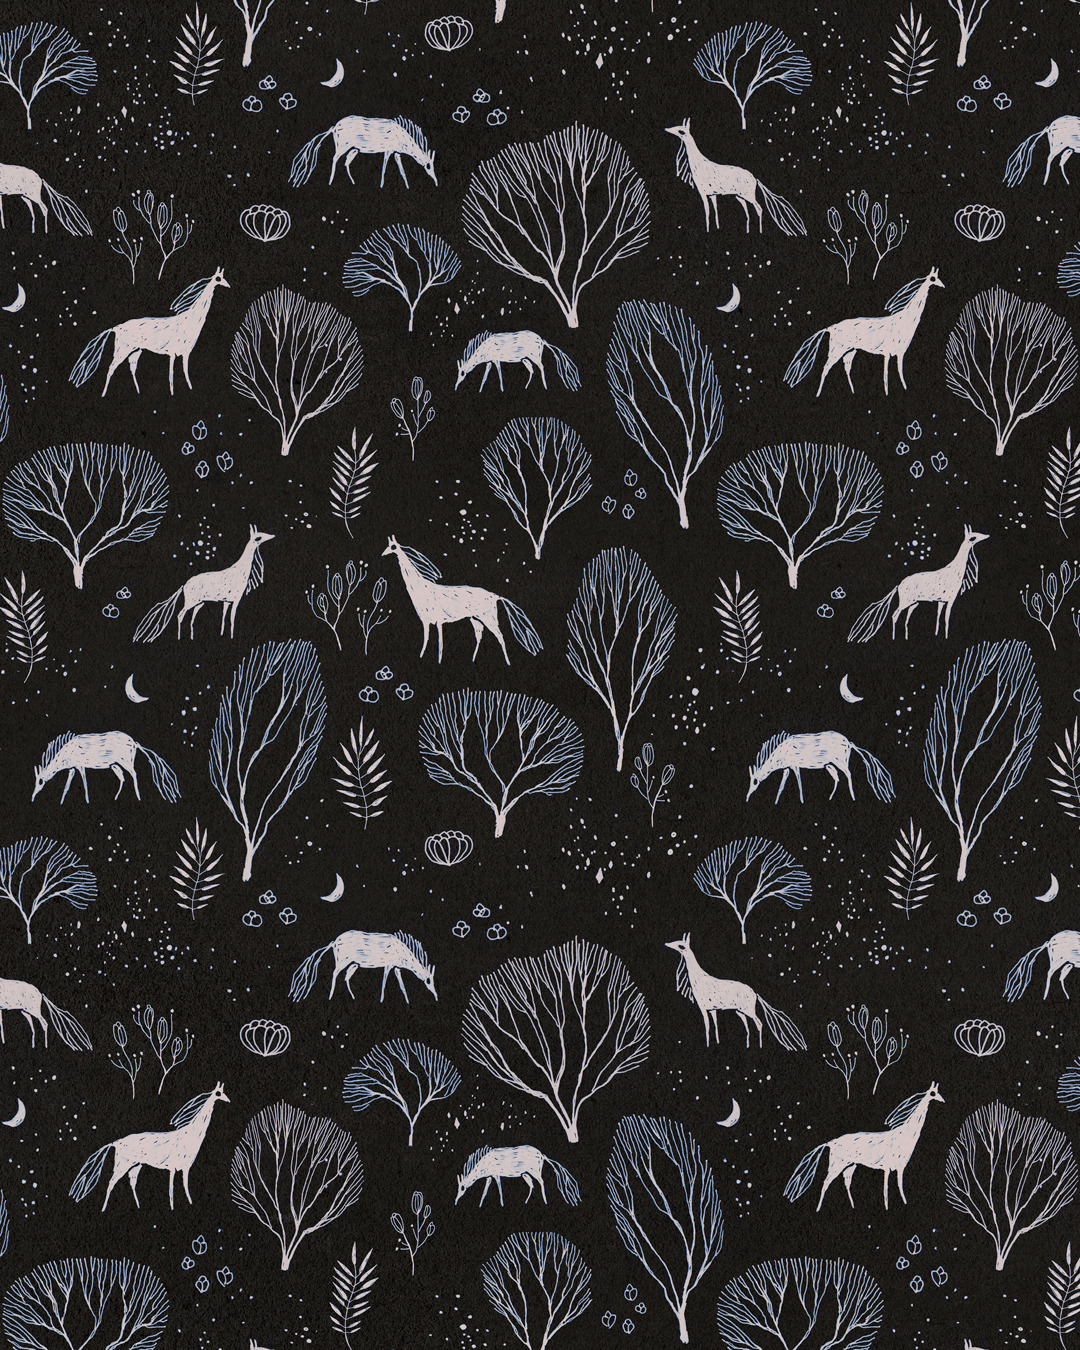 Midnight Garden pattern